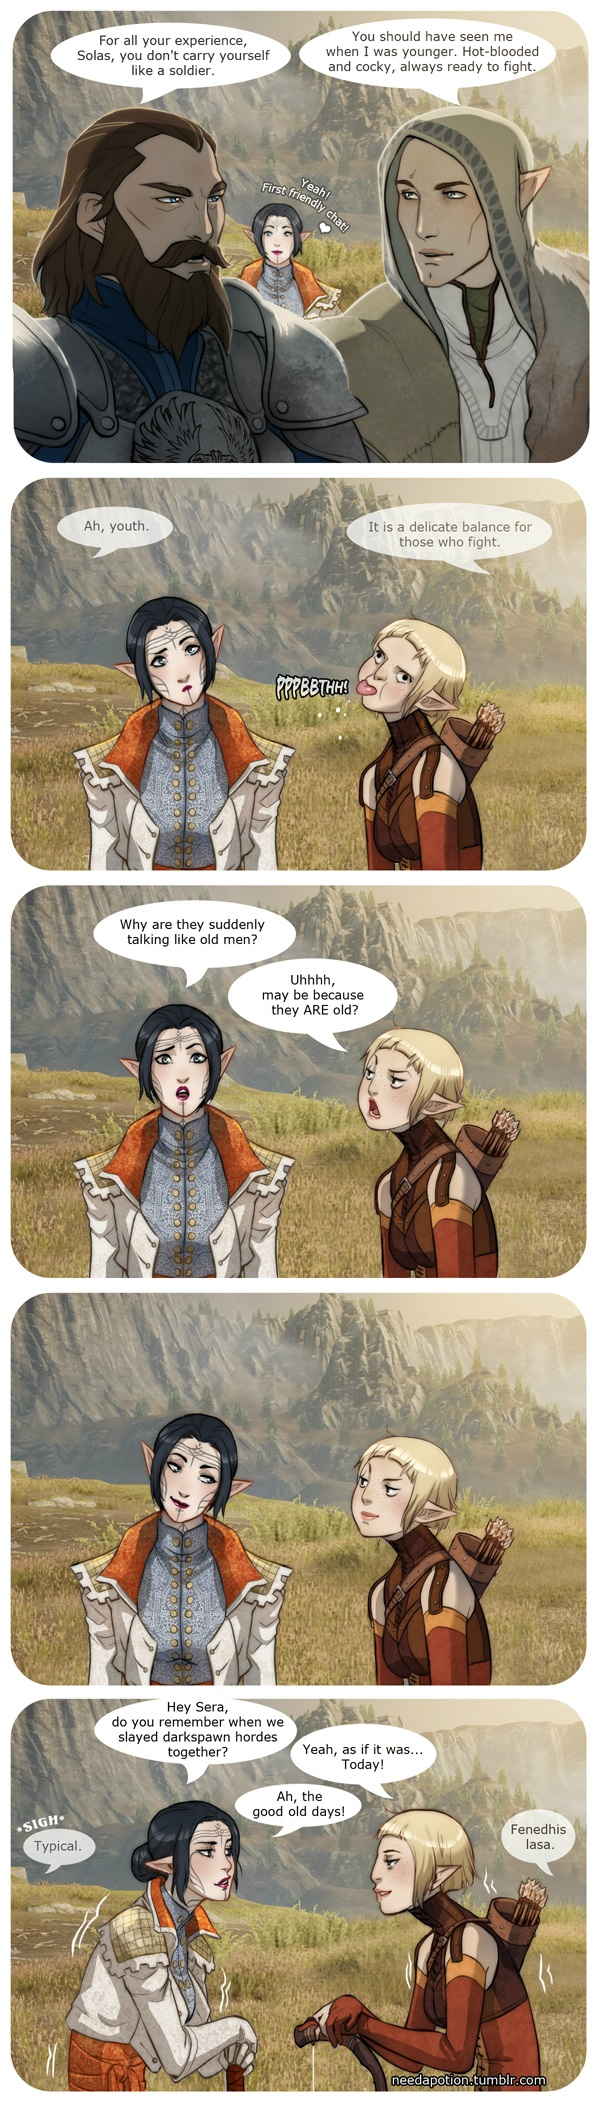 When Middle Age Men Talk Like Octogenarians Dragon Age Know